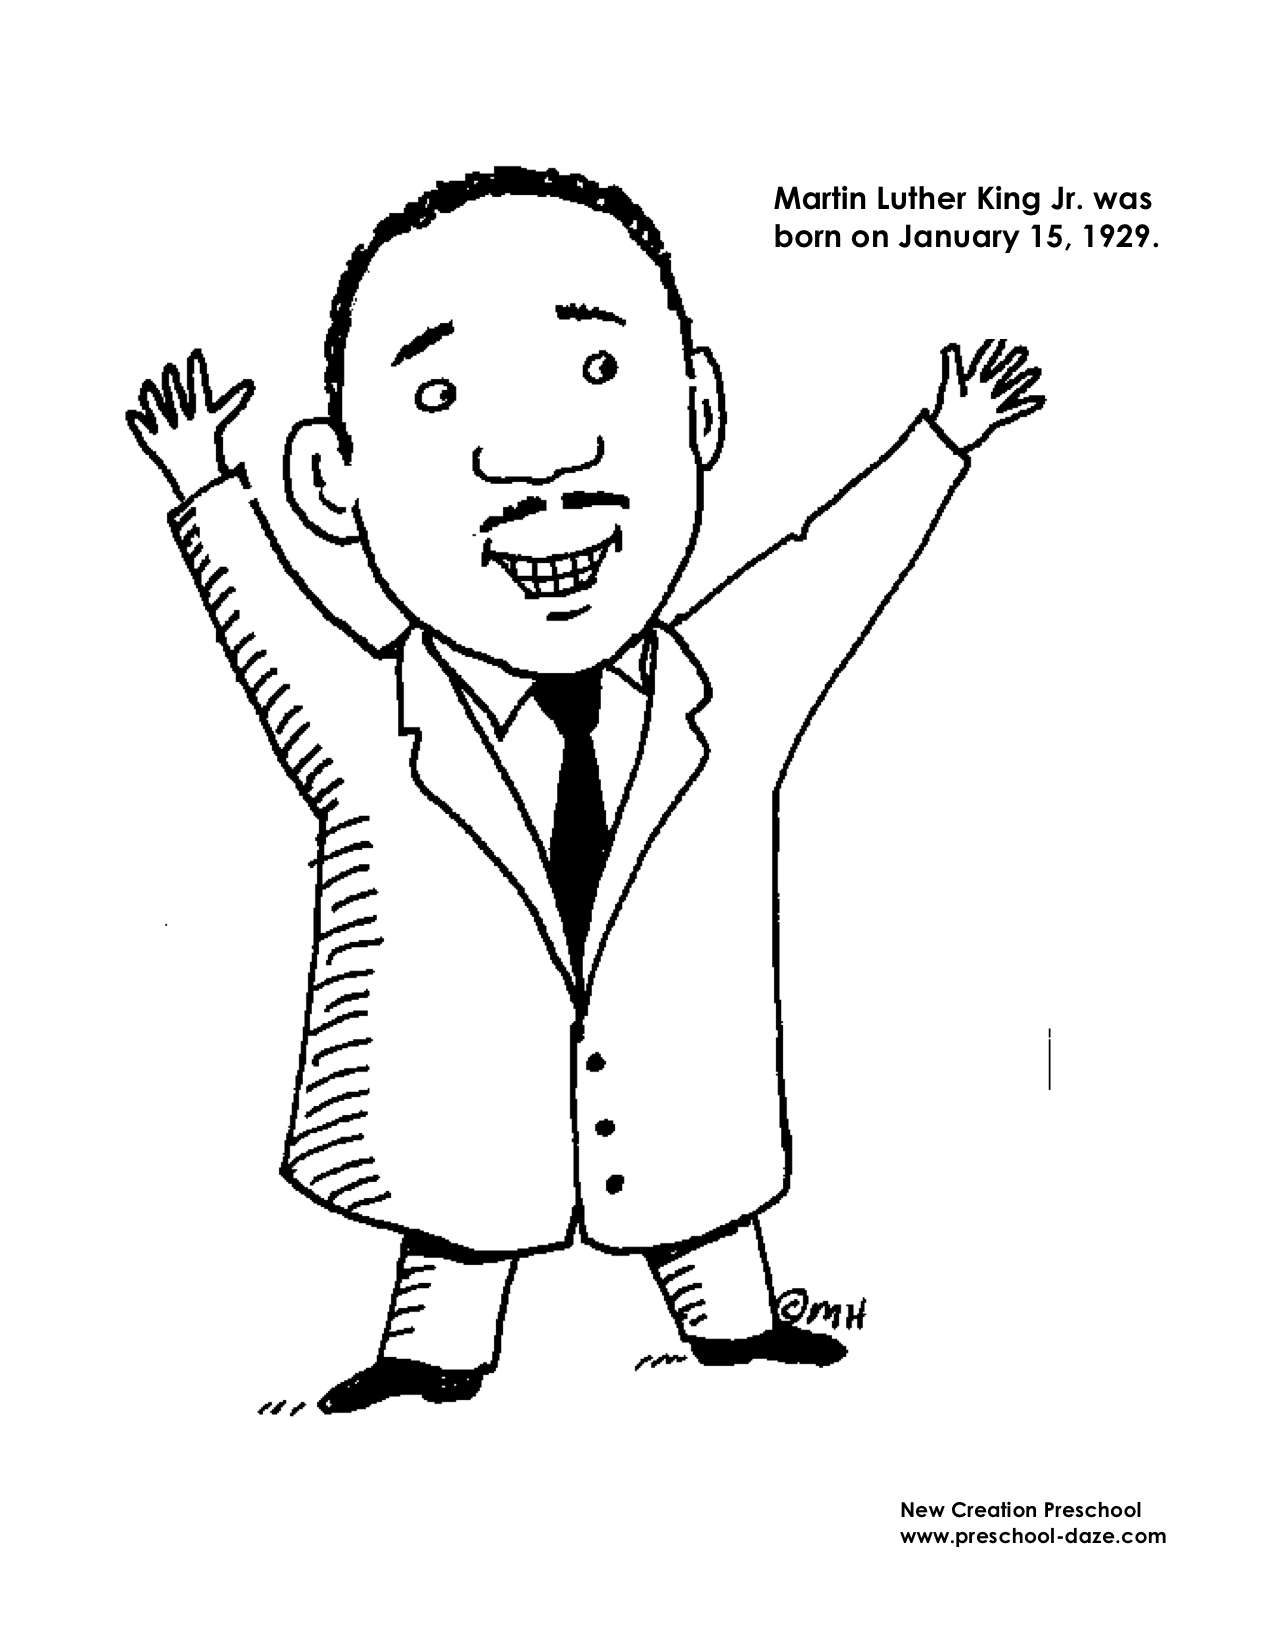 M Is For Martin Luther King Jr From The Archives New